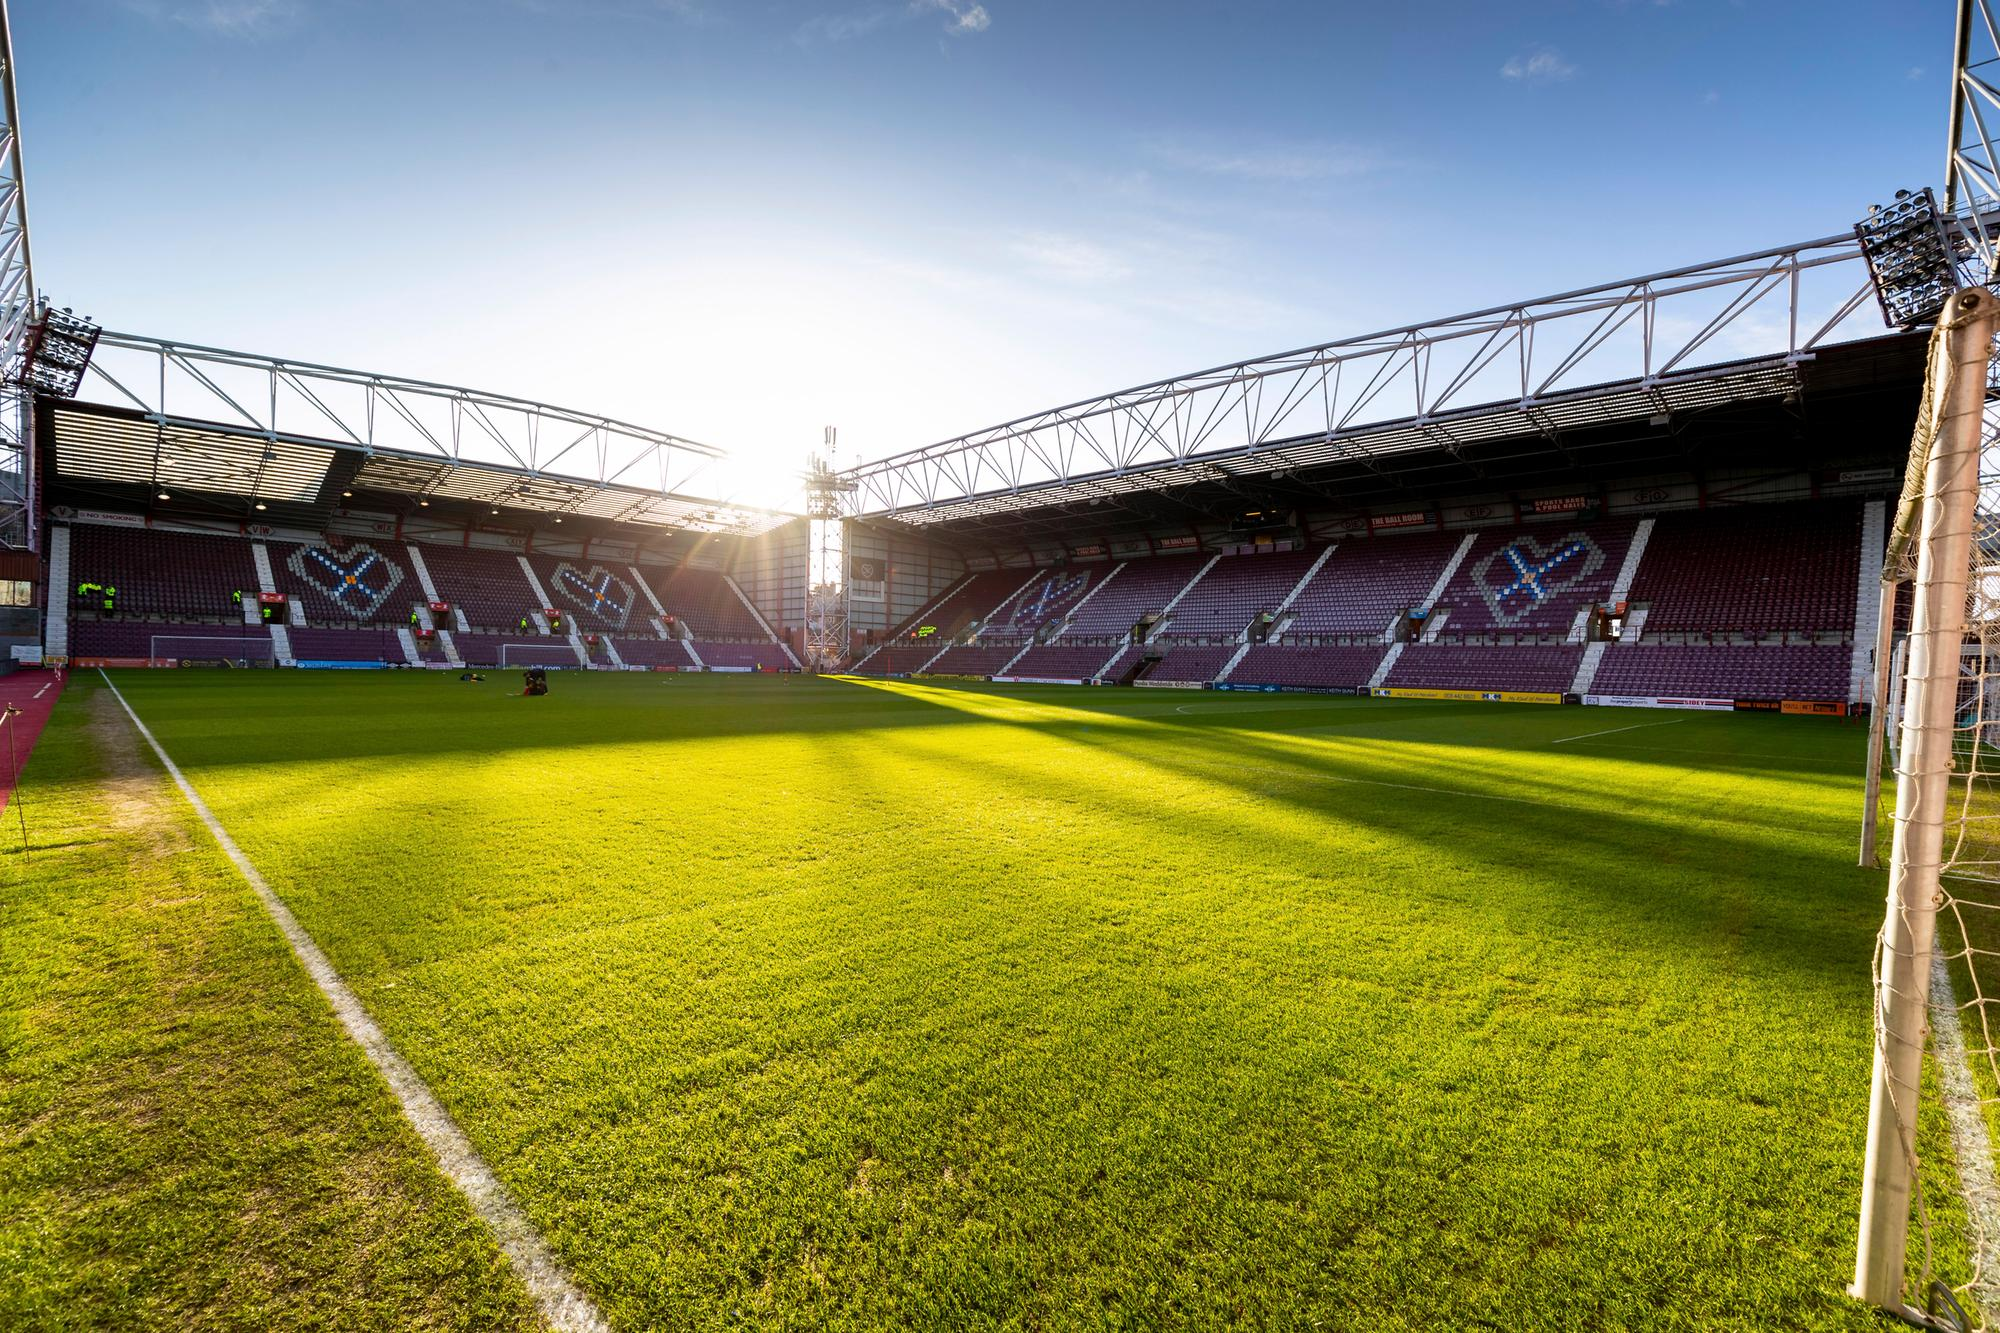 Hearts unable to use five substitutes after Championship clubs reject new proposal